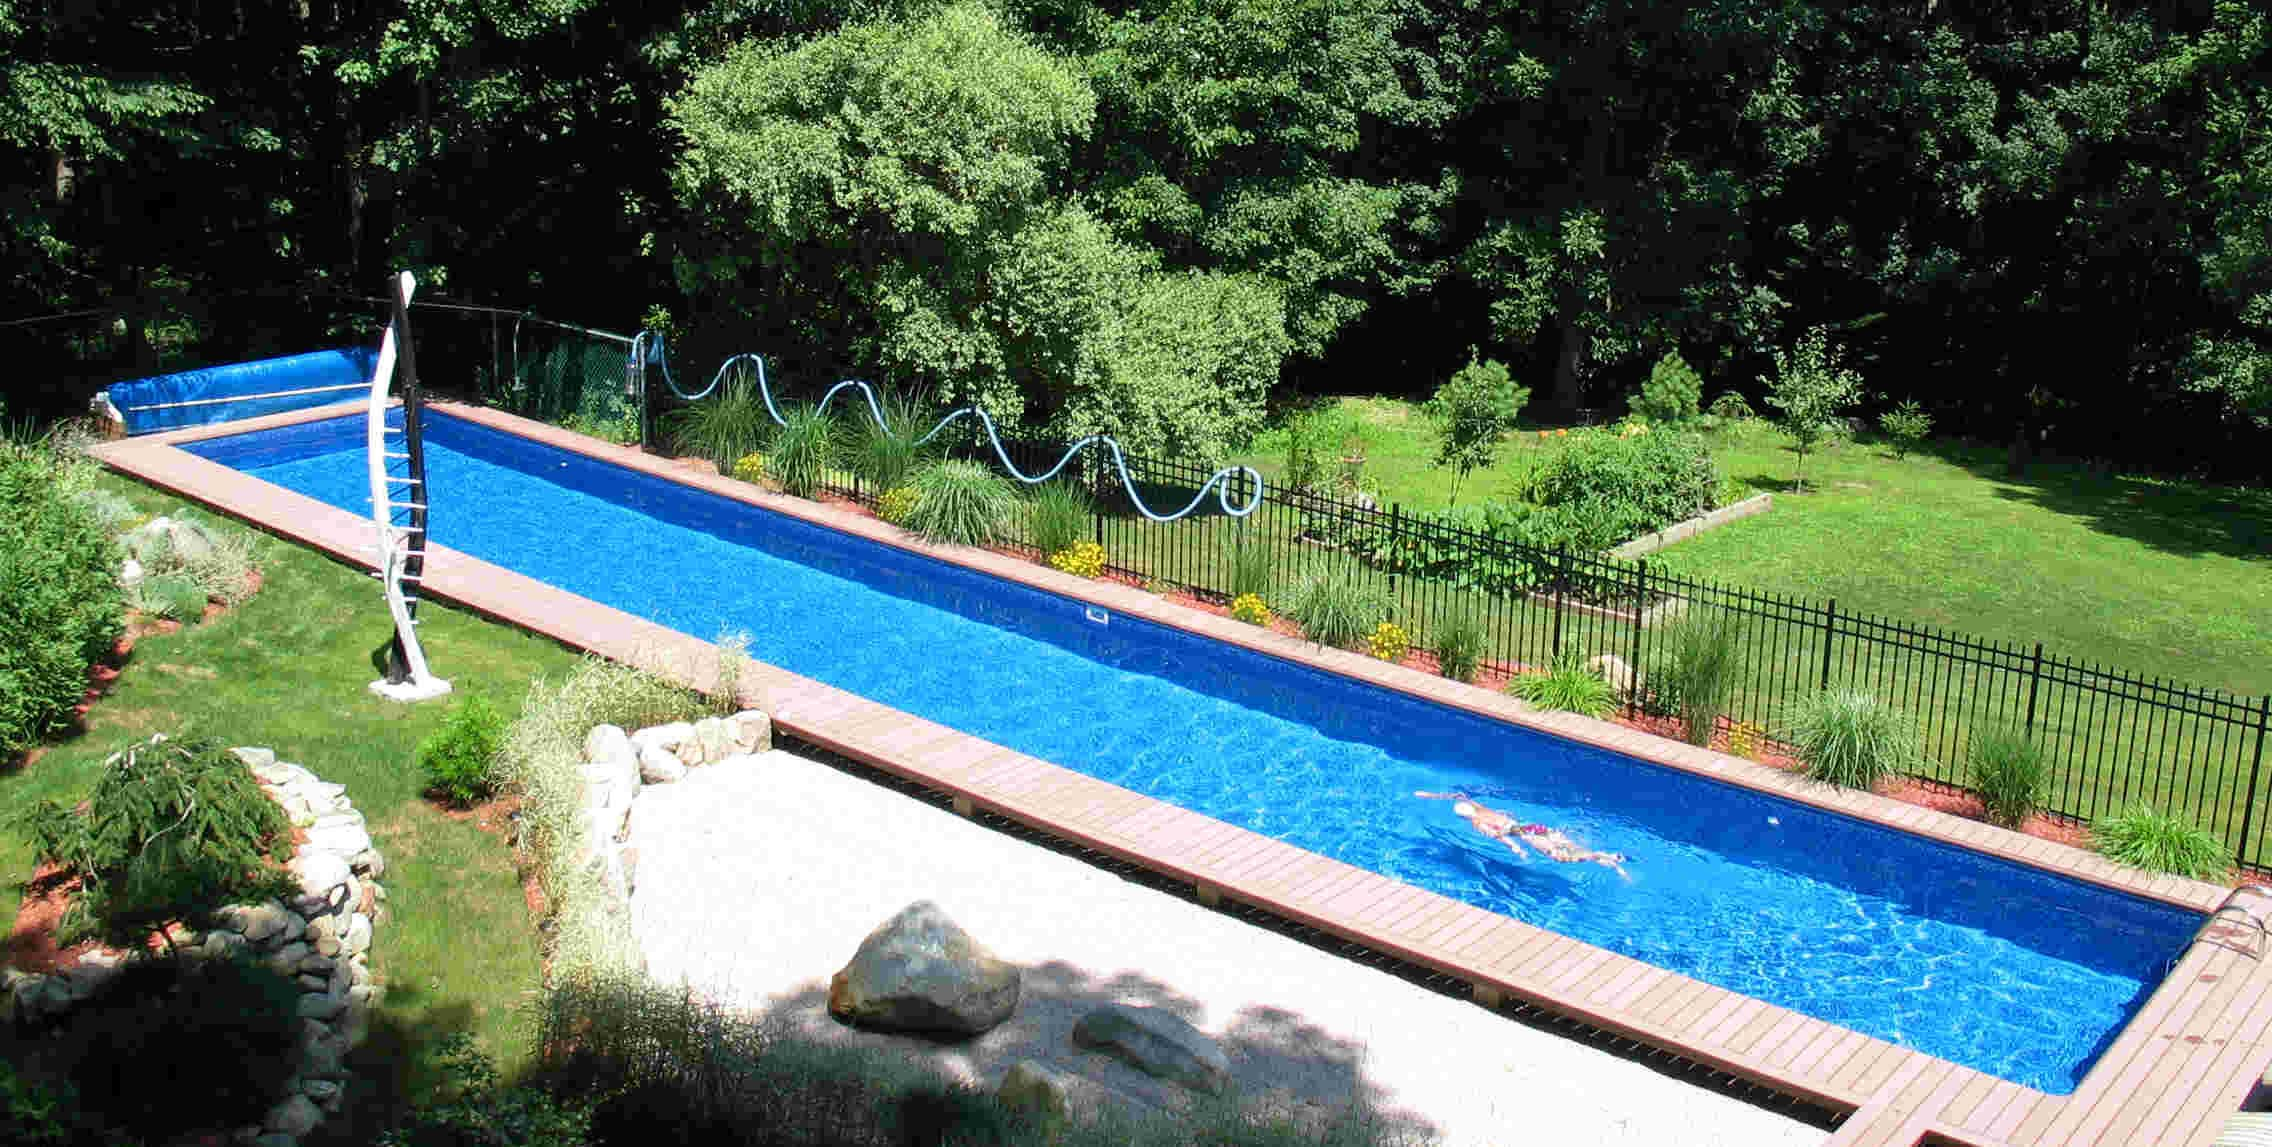 Diy inground swimming pool backyard design ideas for Pictures of inground pools